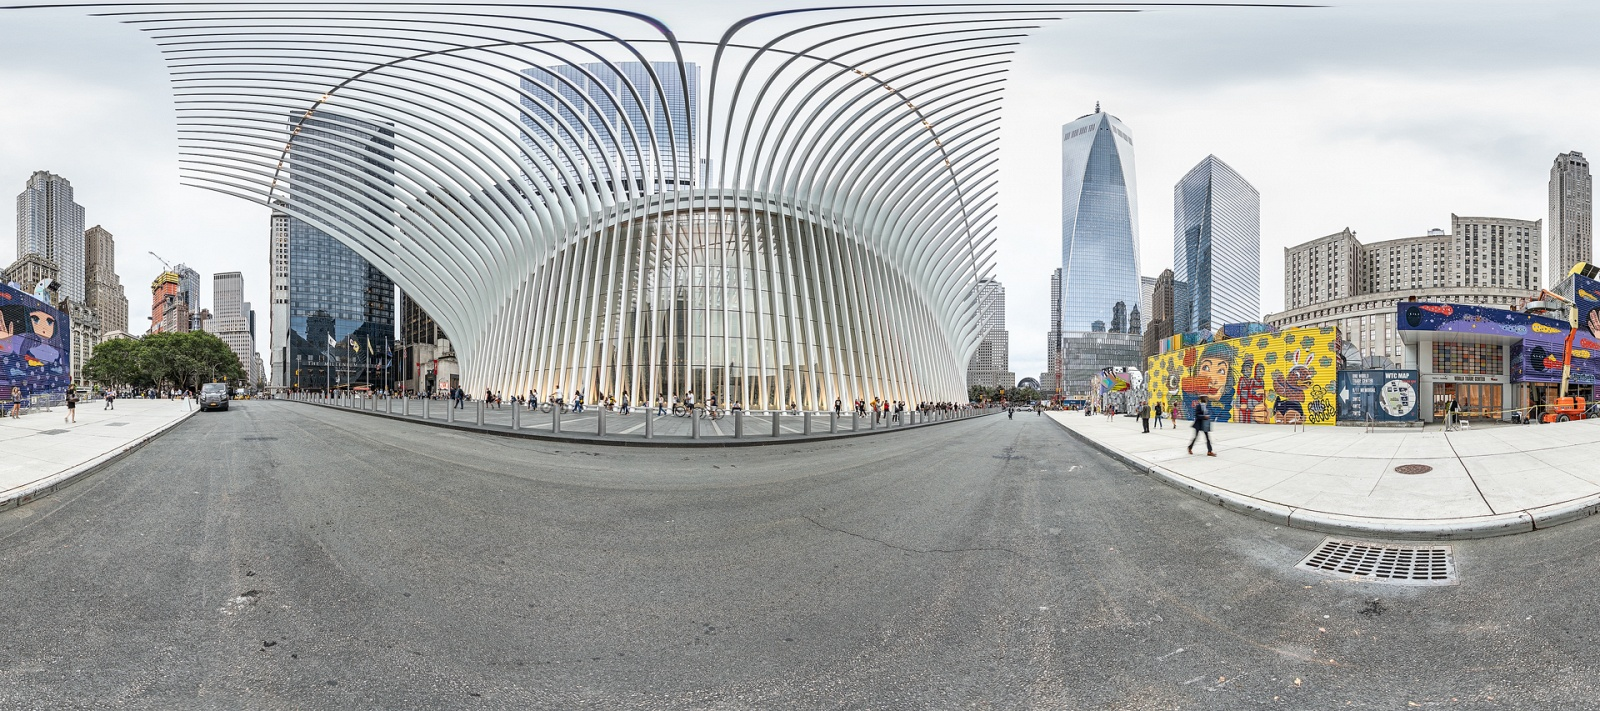 Oculus and One World Trade Center New York 2018